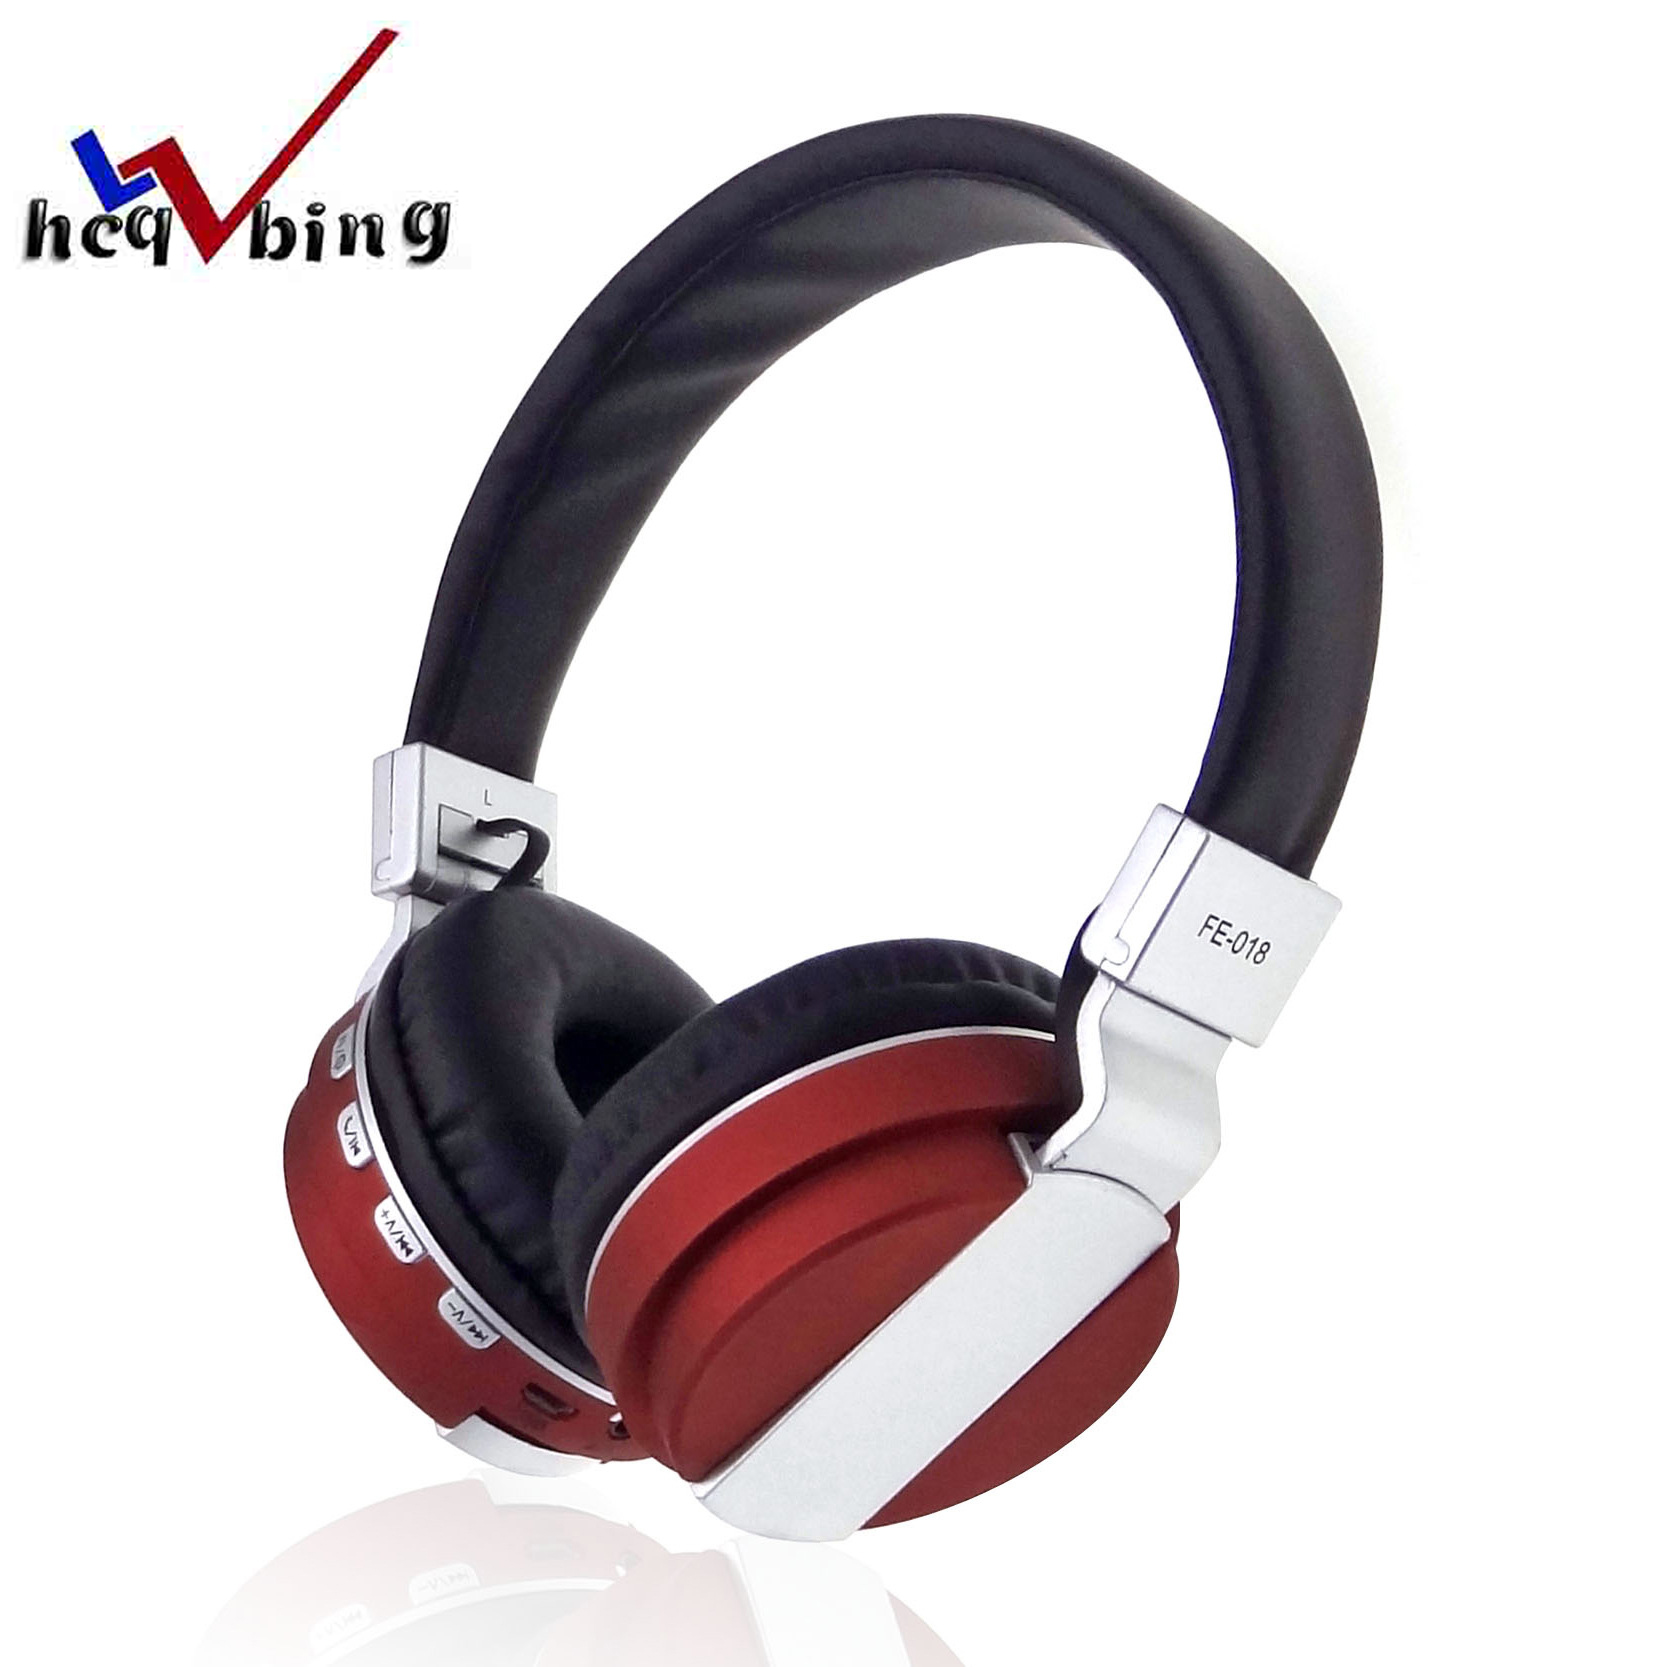 HCQWBING New Foldable headphone wireless NFC bluetooth 4.2 + micro sd + FM Multifunction stereo mic headset Handsfree microphone smilyou multifunction wireless bluetooth 4 1 stereo headphone sd card